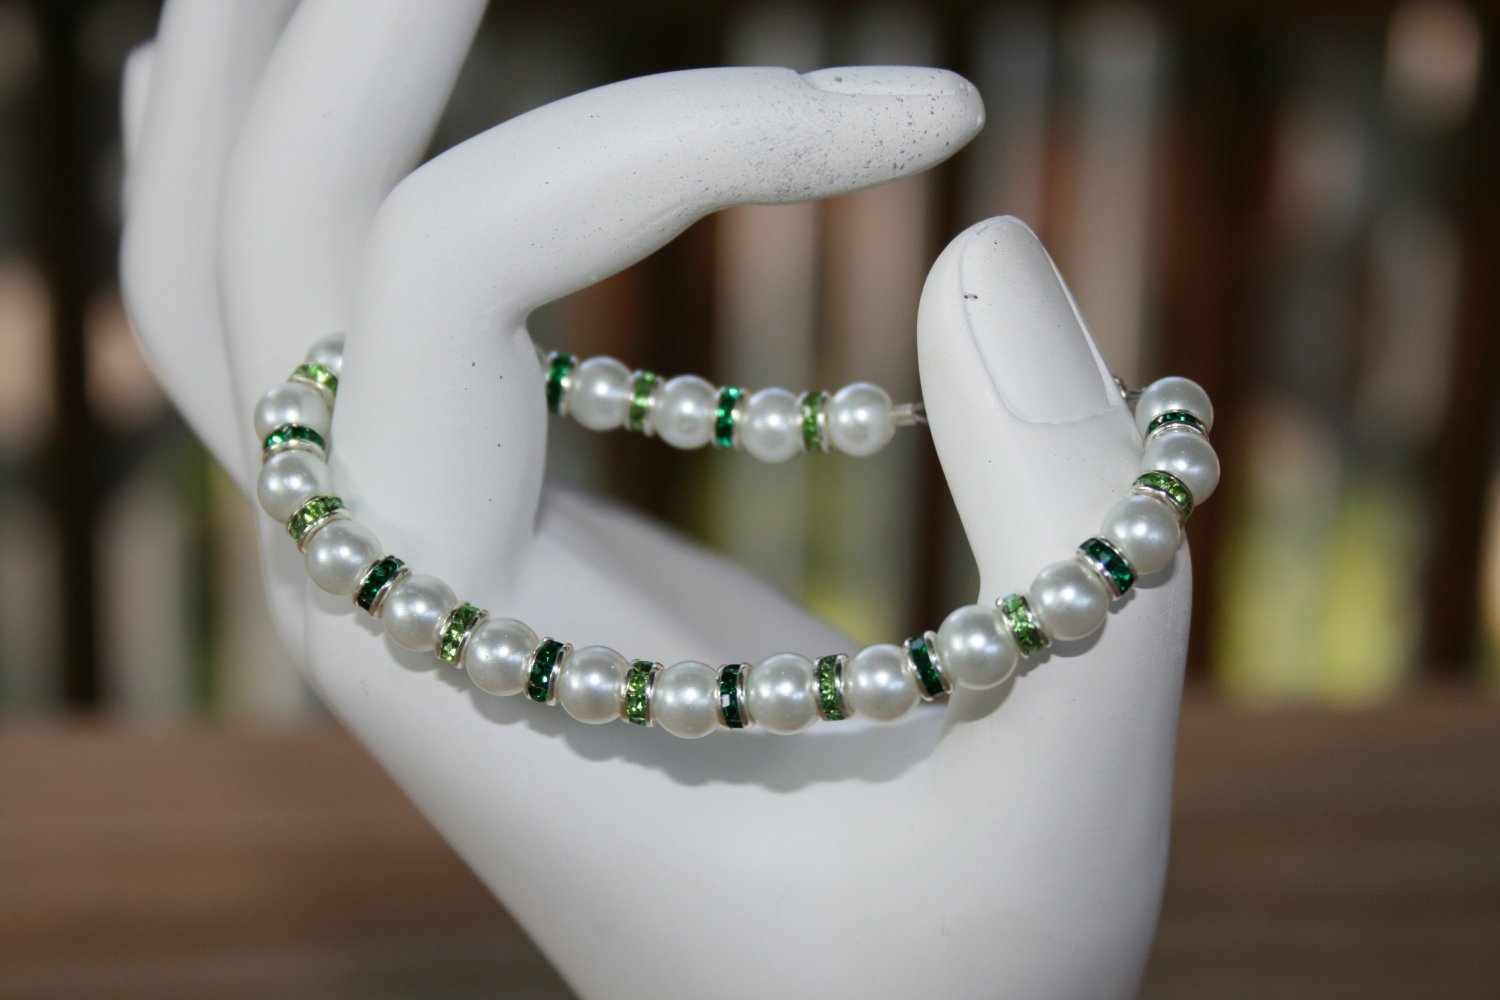 Green dream bracelet